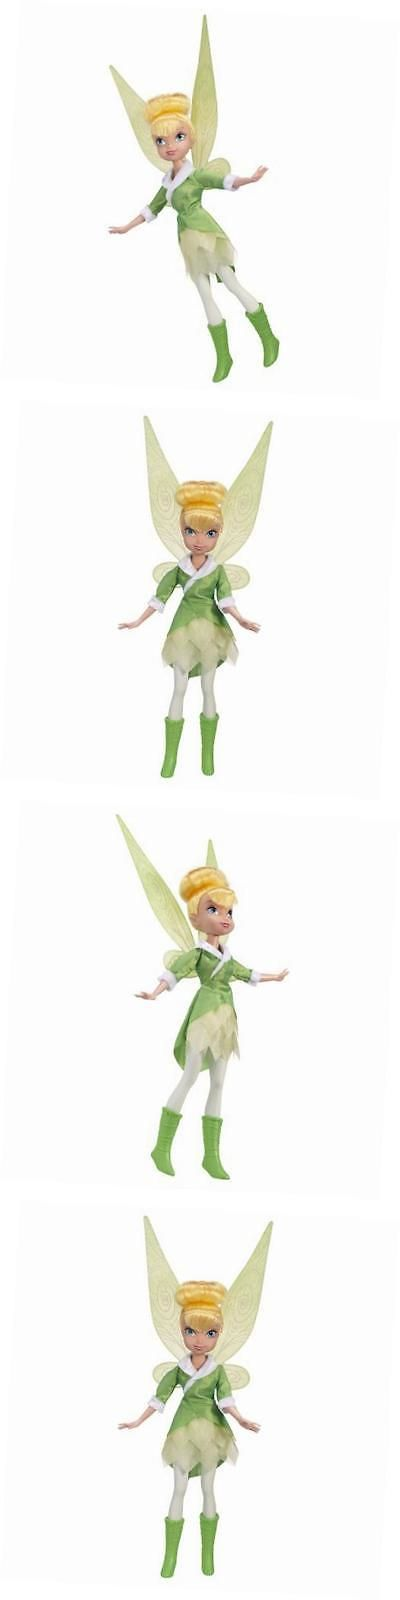 Tinker Bell Peter Pan 146041: Fairies Secret Of The Wings Fashion Doll - Tink -> BUY IT NOW ONLY: $31.76 on eBay!